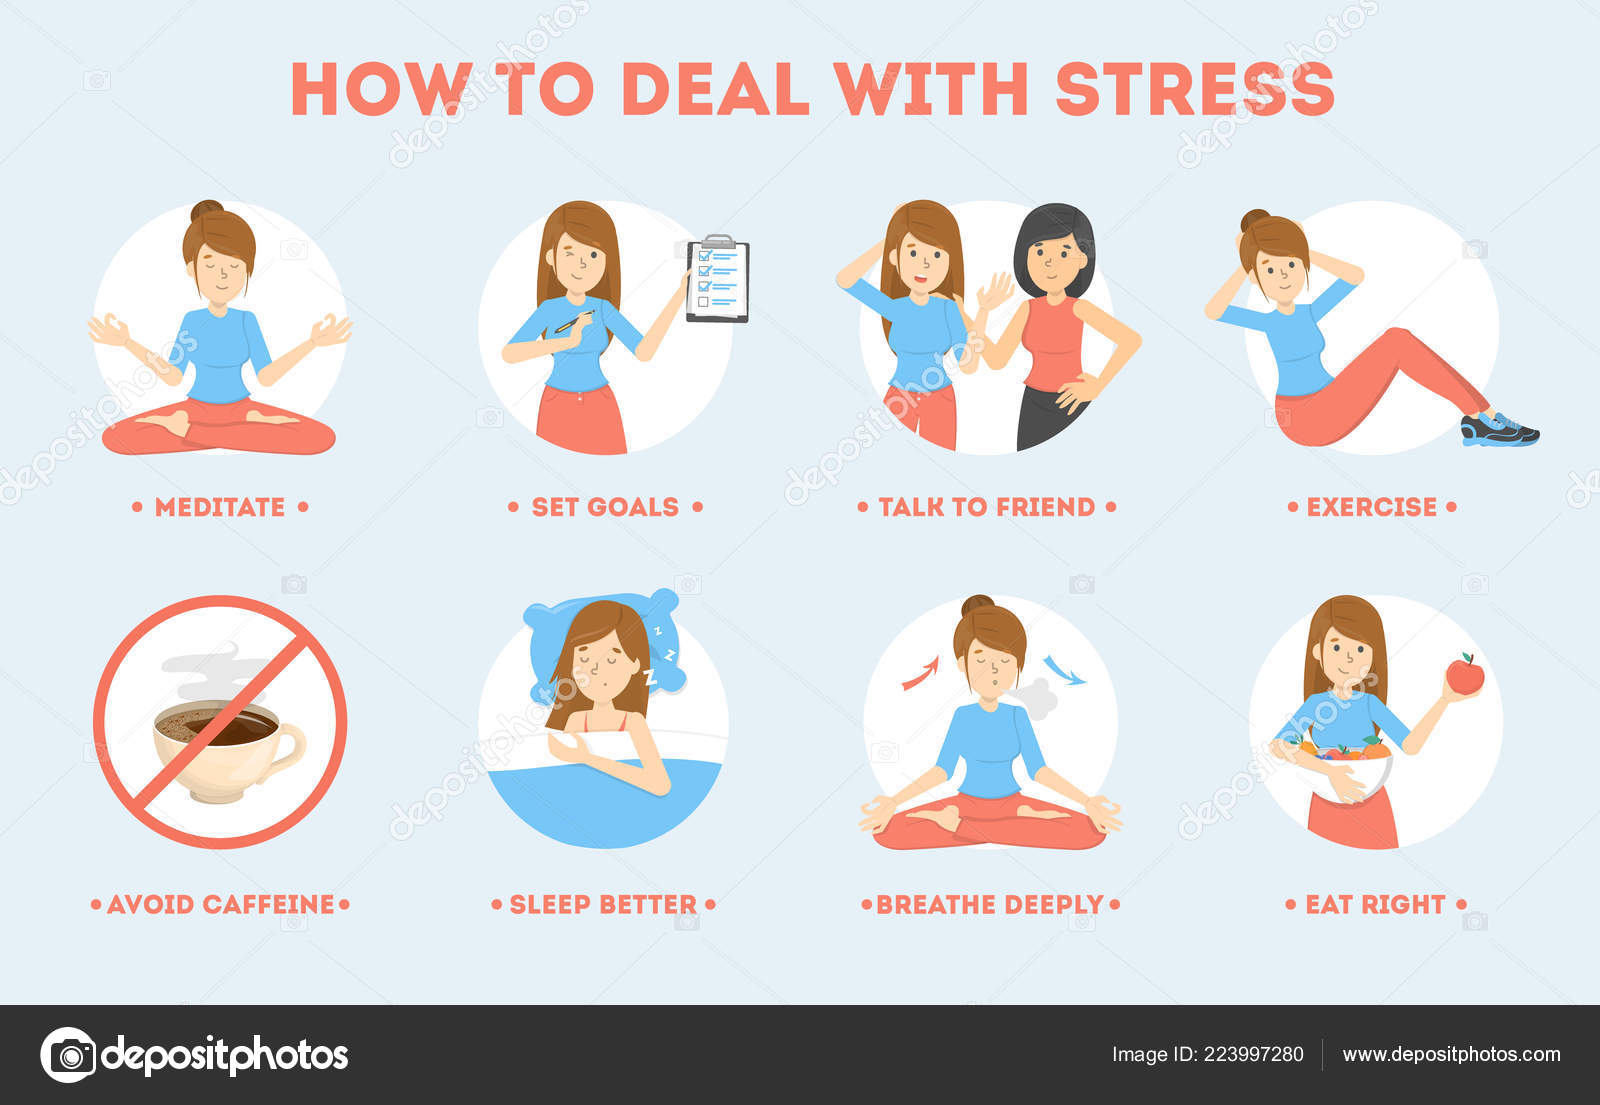 How To Deal With Stress Guide Depression Reduce